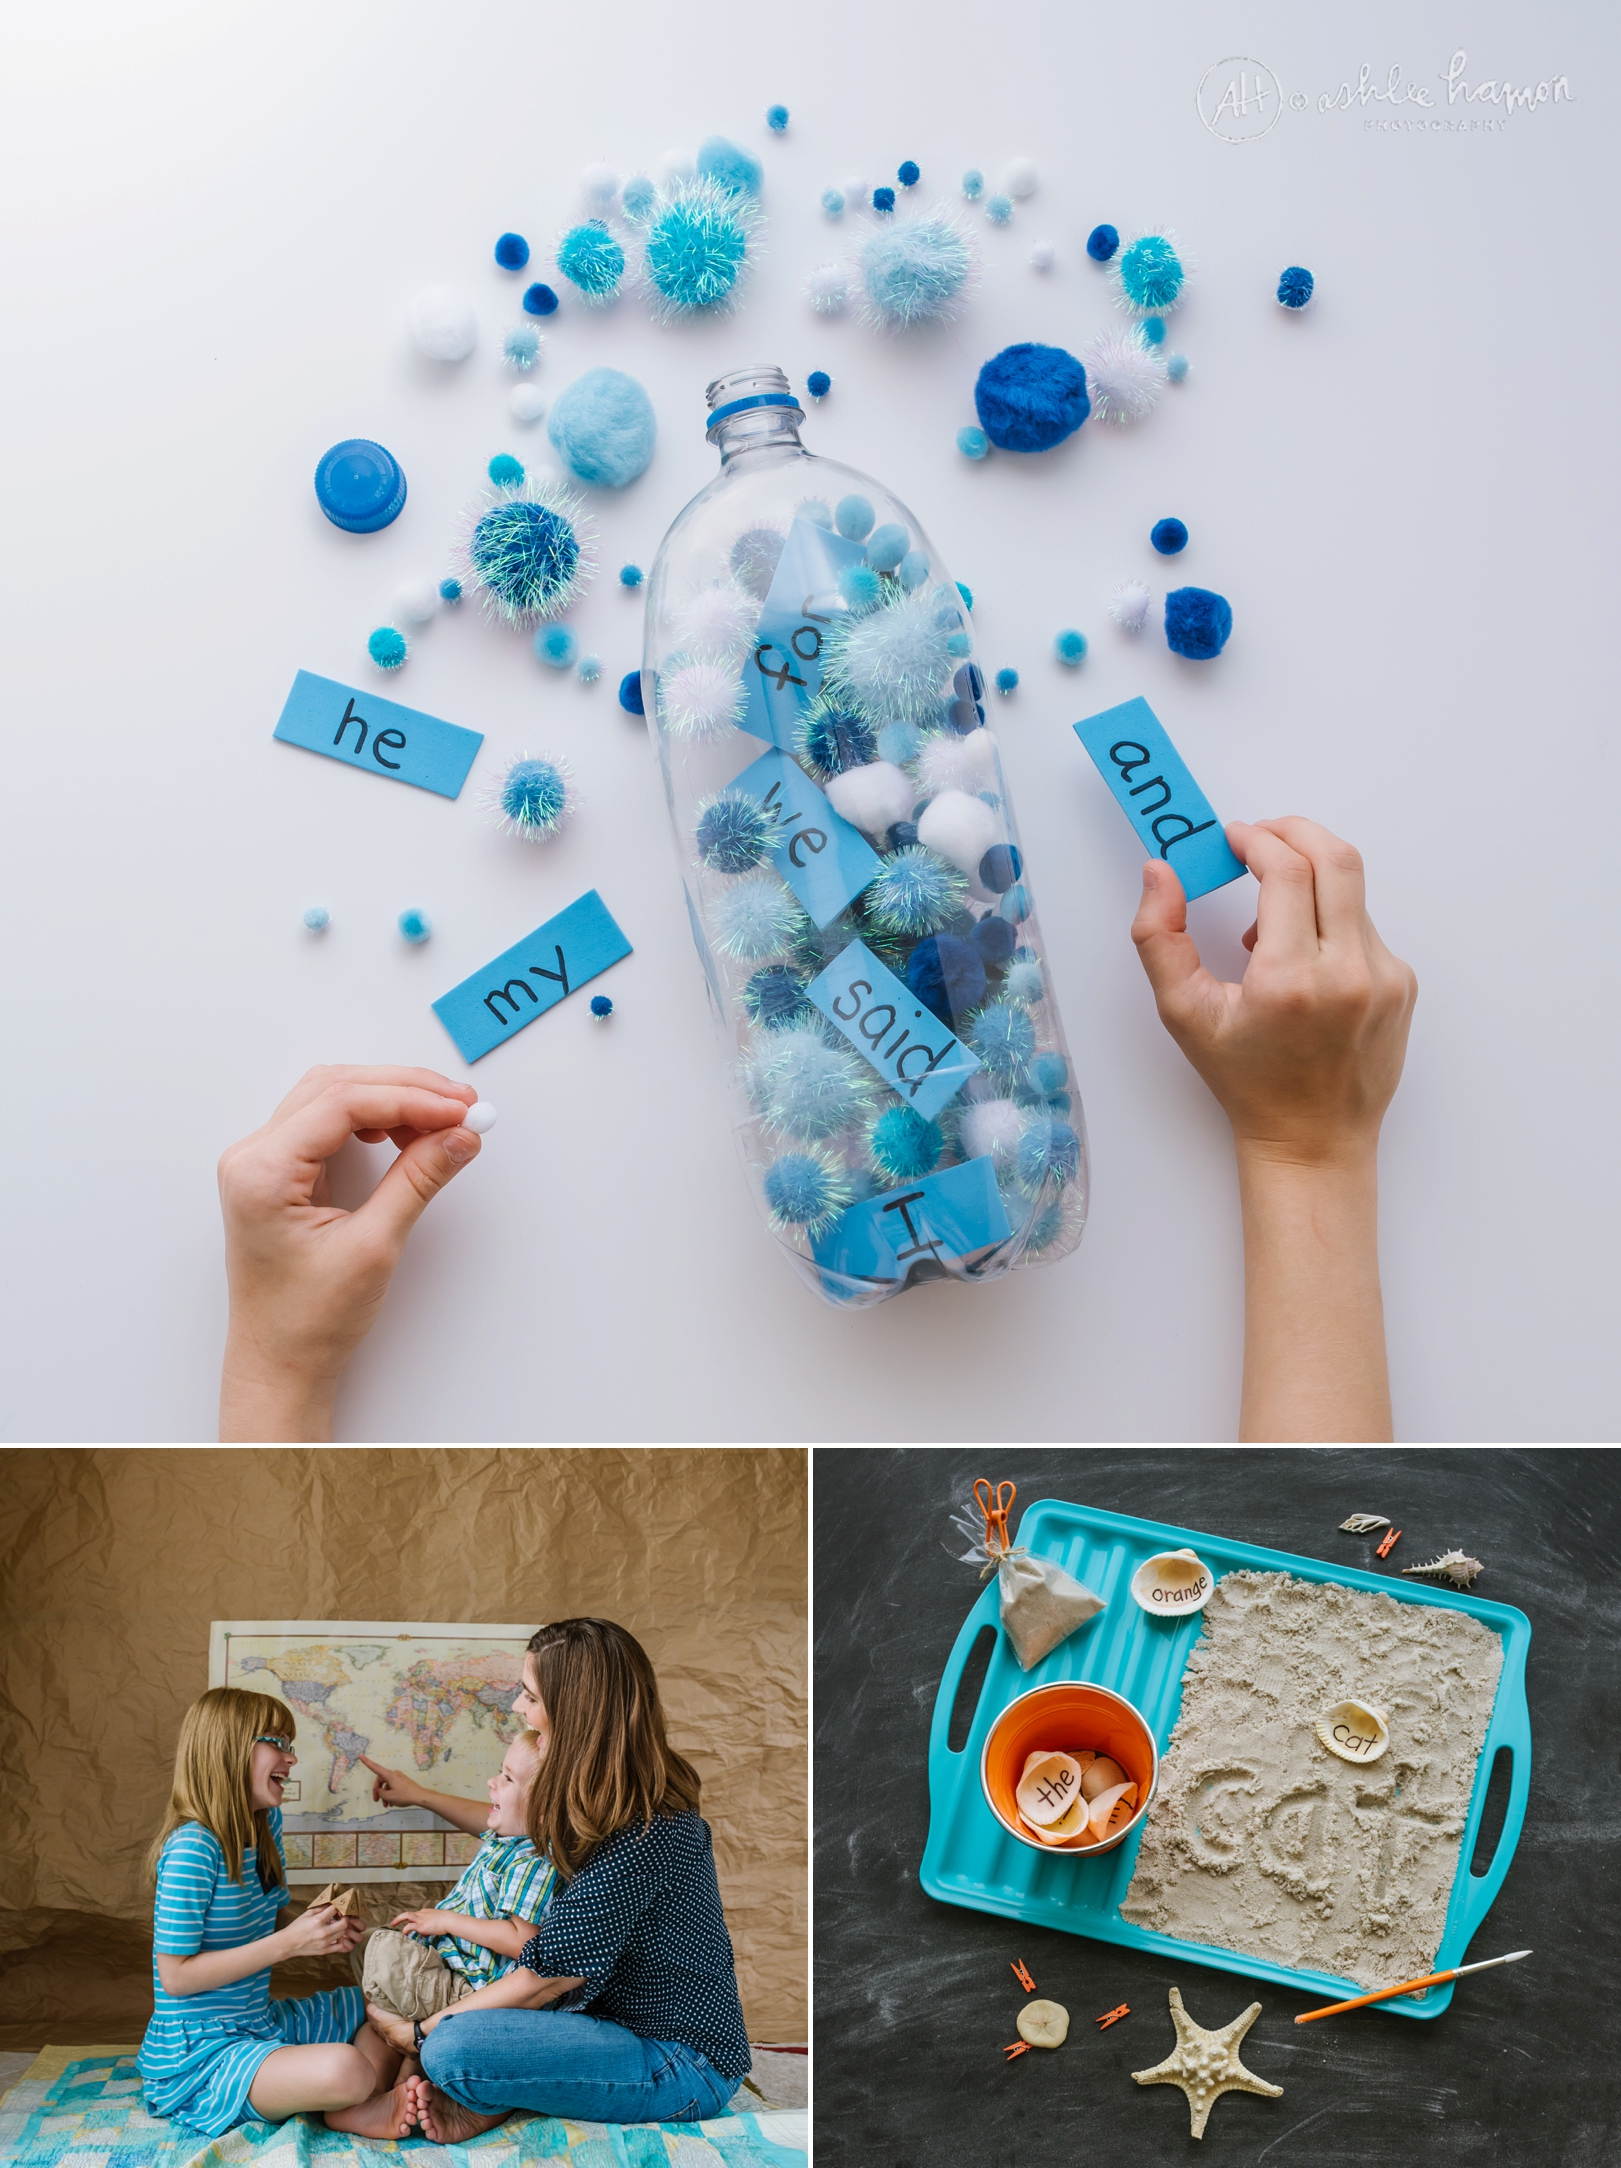 tampa-product-photography-kids-craft-book_0000.jpg